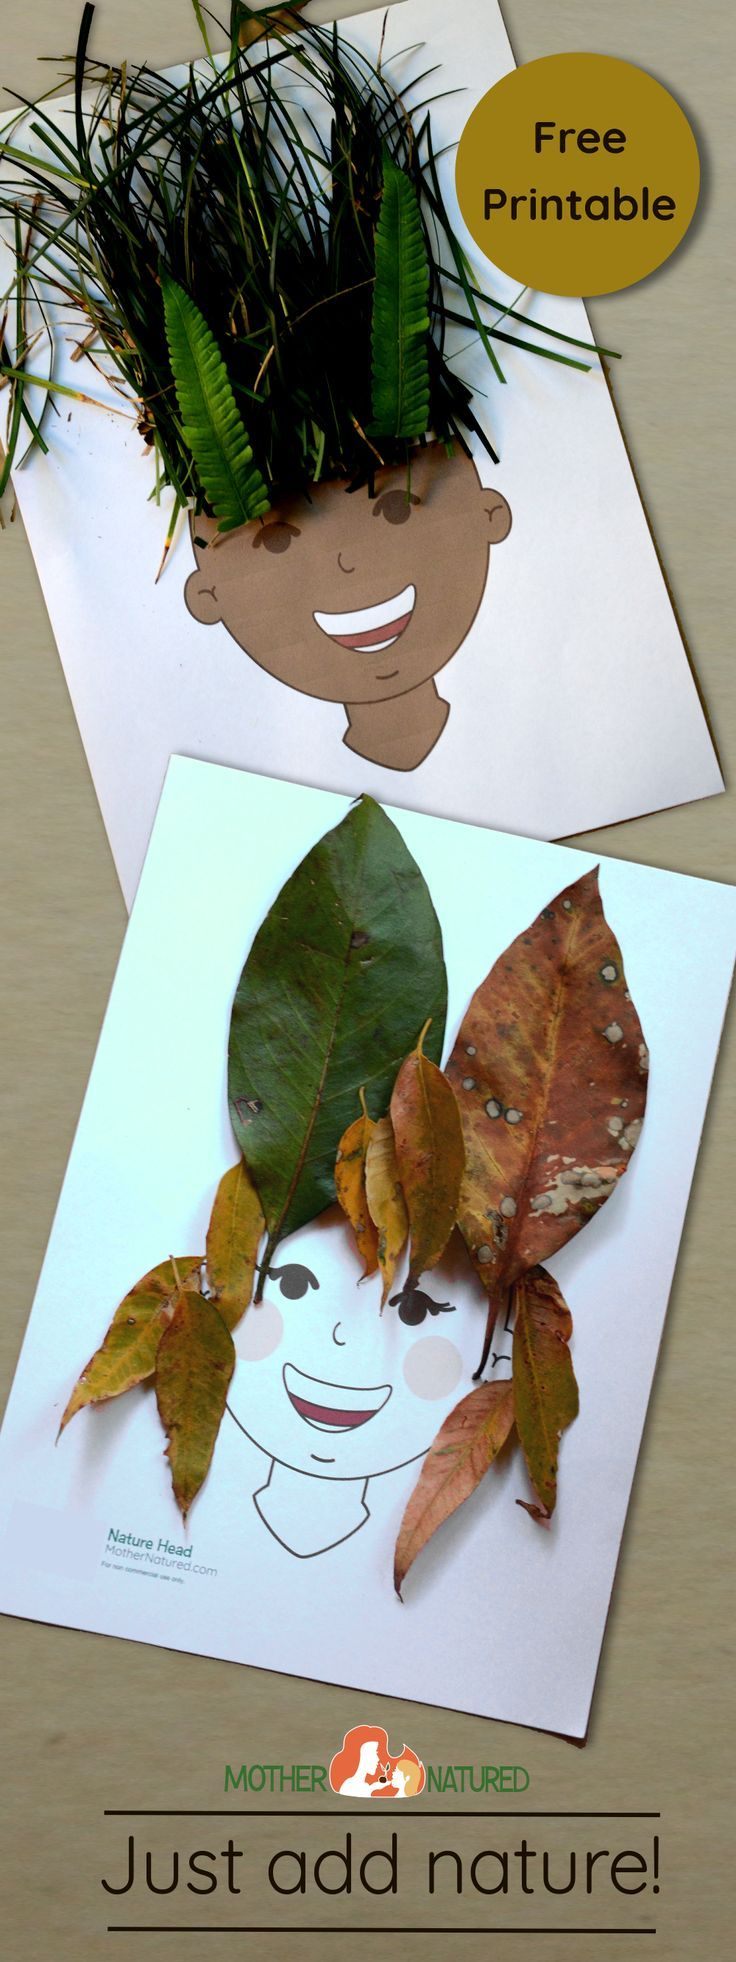 Free Printable Your Kids Will Adore This Nature Head Collage